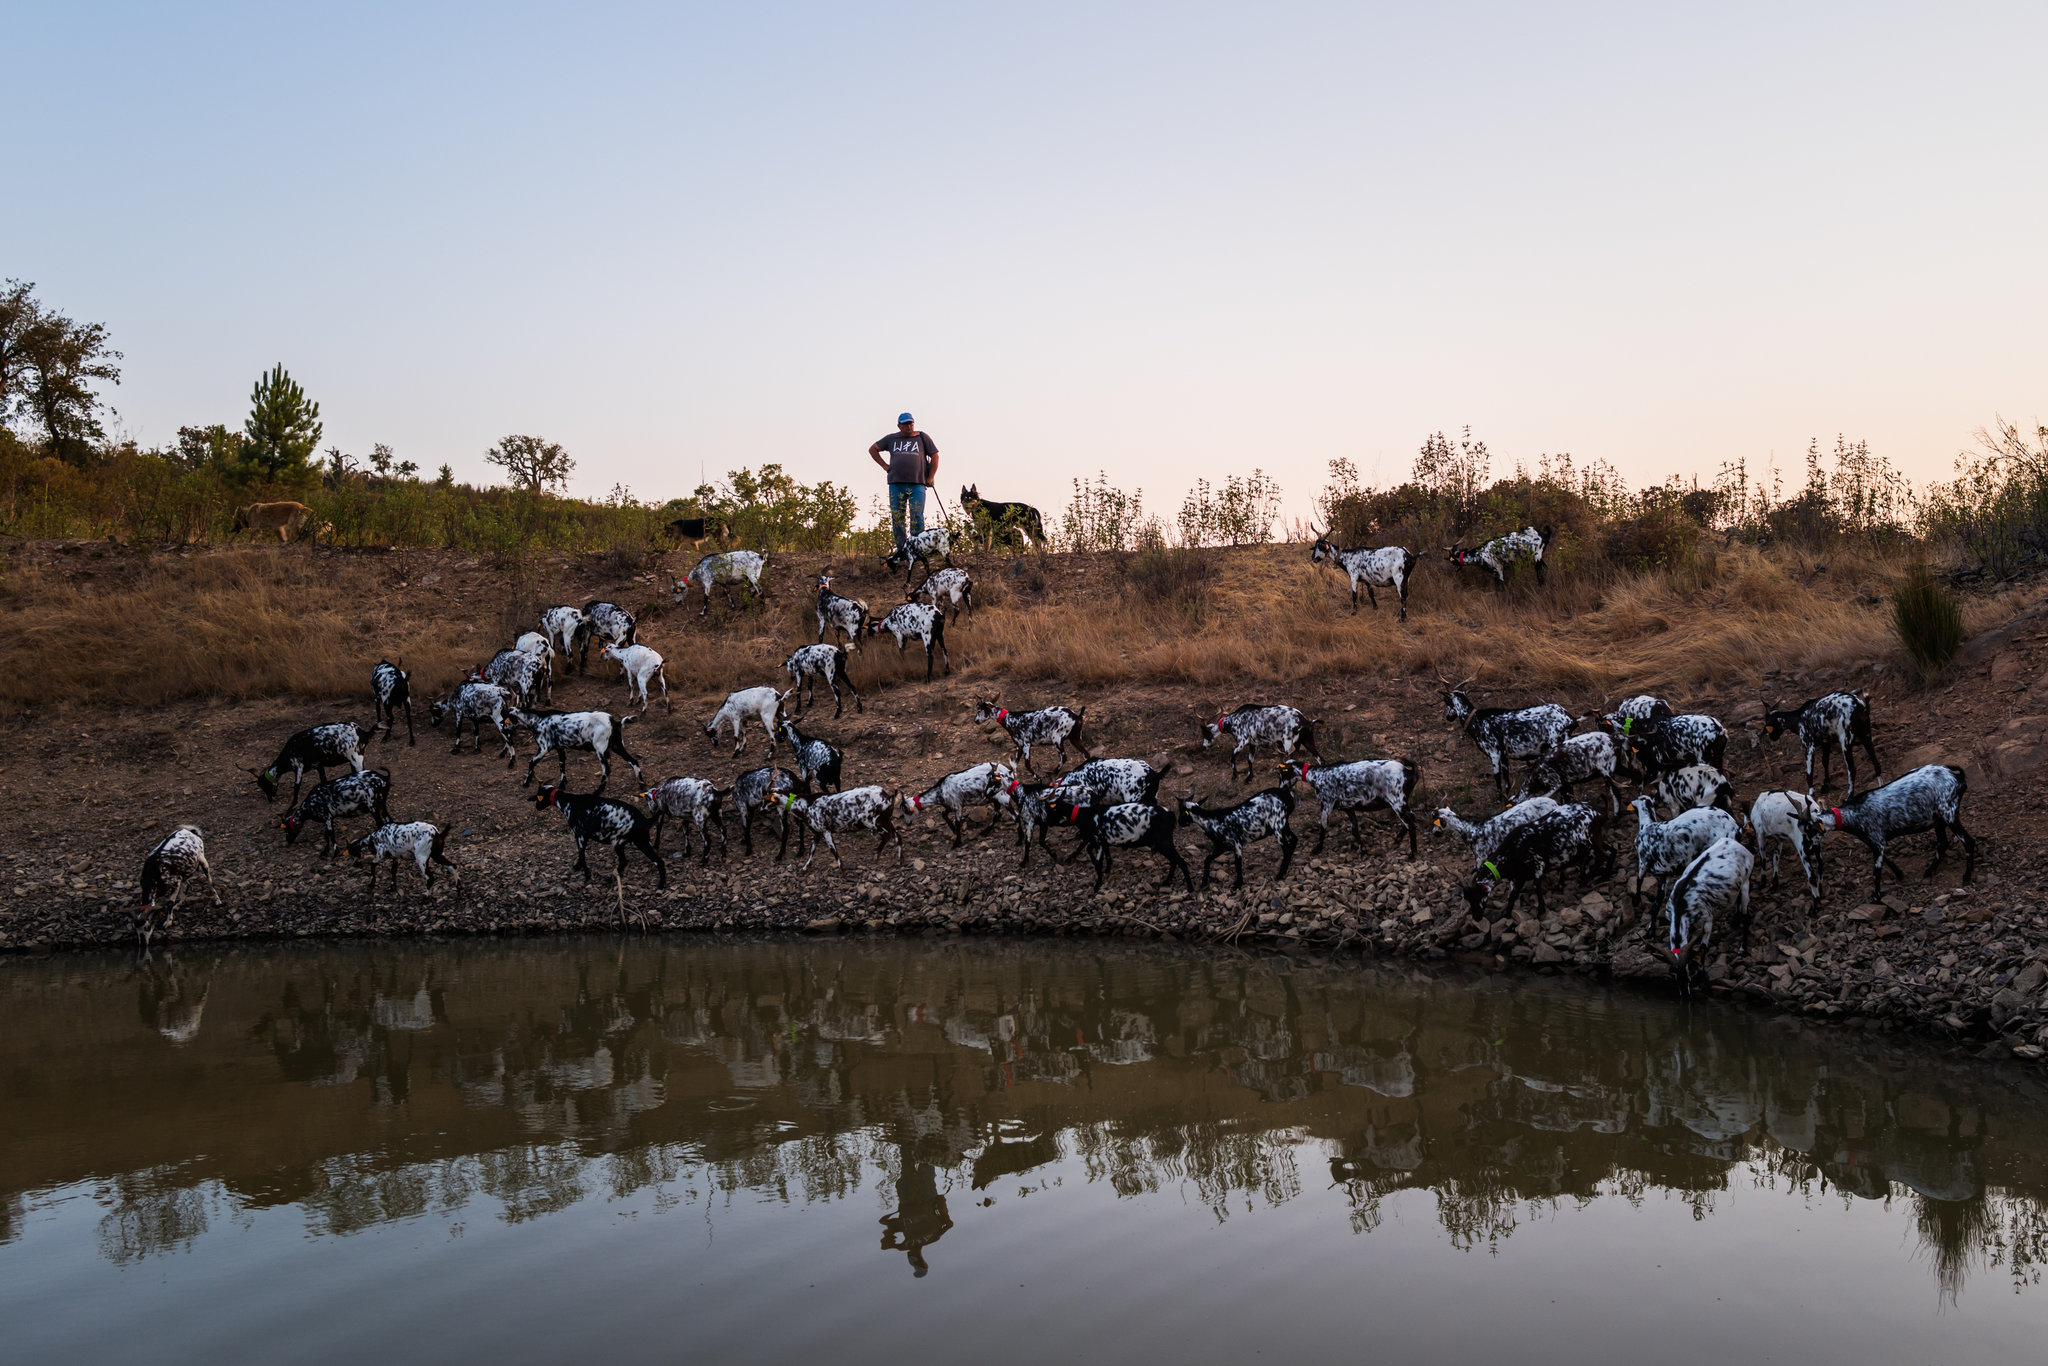 Leonel Martins Pereira, a shepherd in Vermelhos, Portugal, with the goats he tends at the end of a long day.